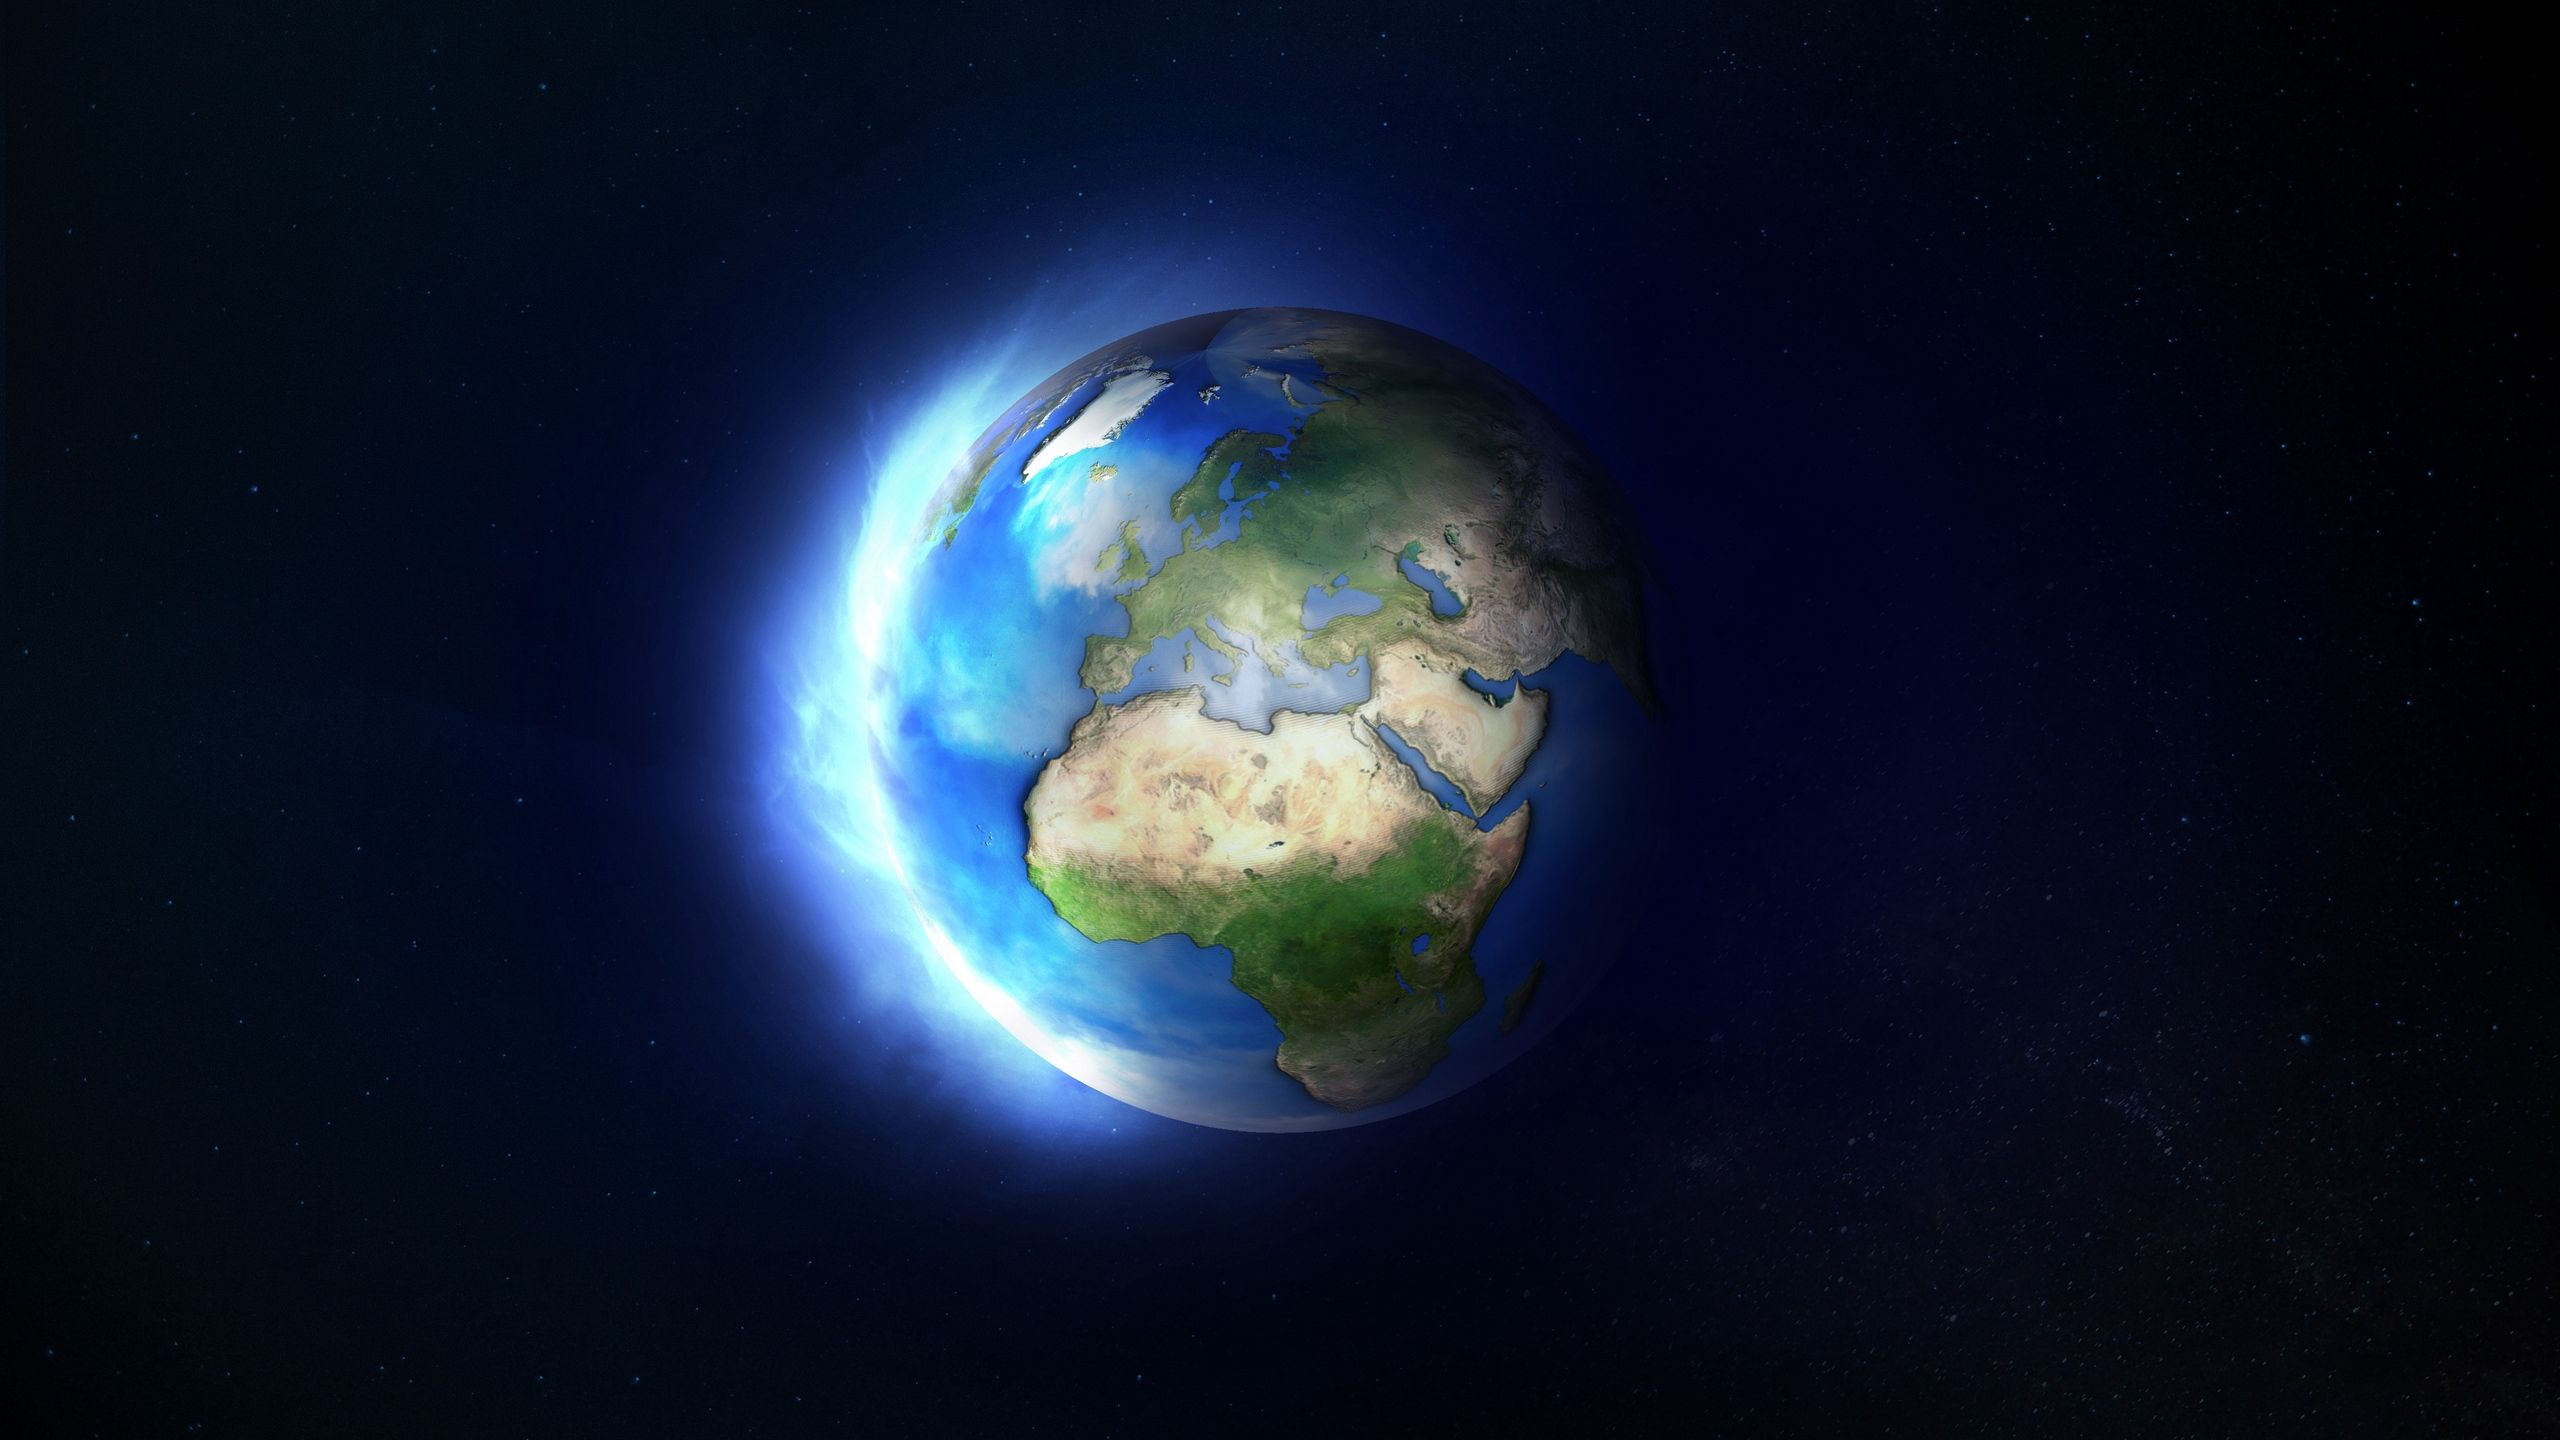 Wallpaper Planet Earth